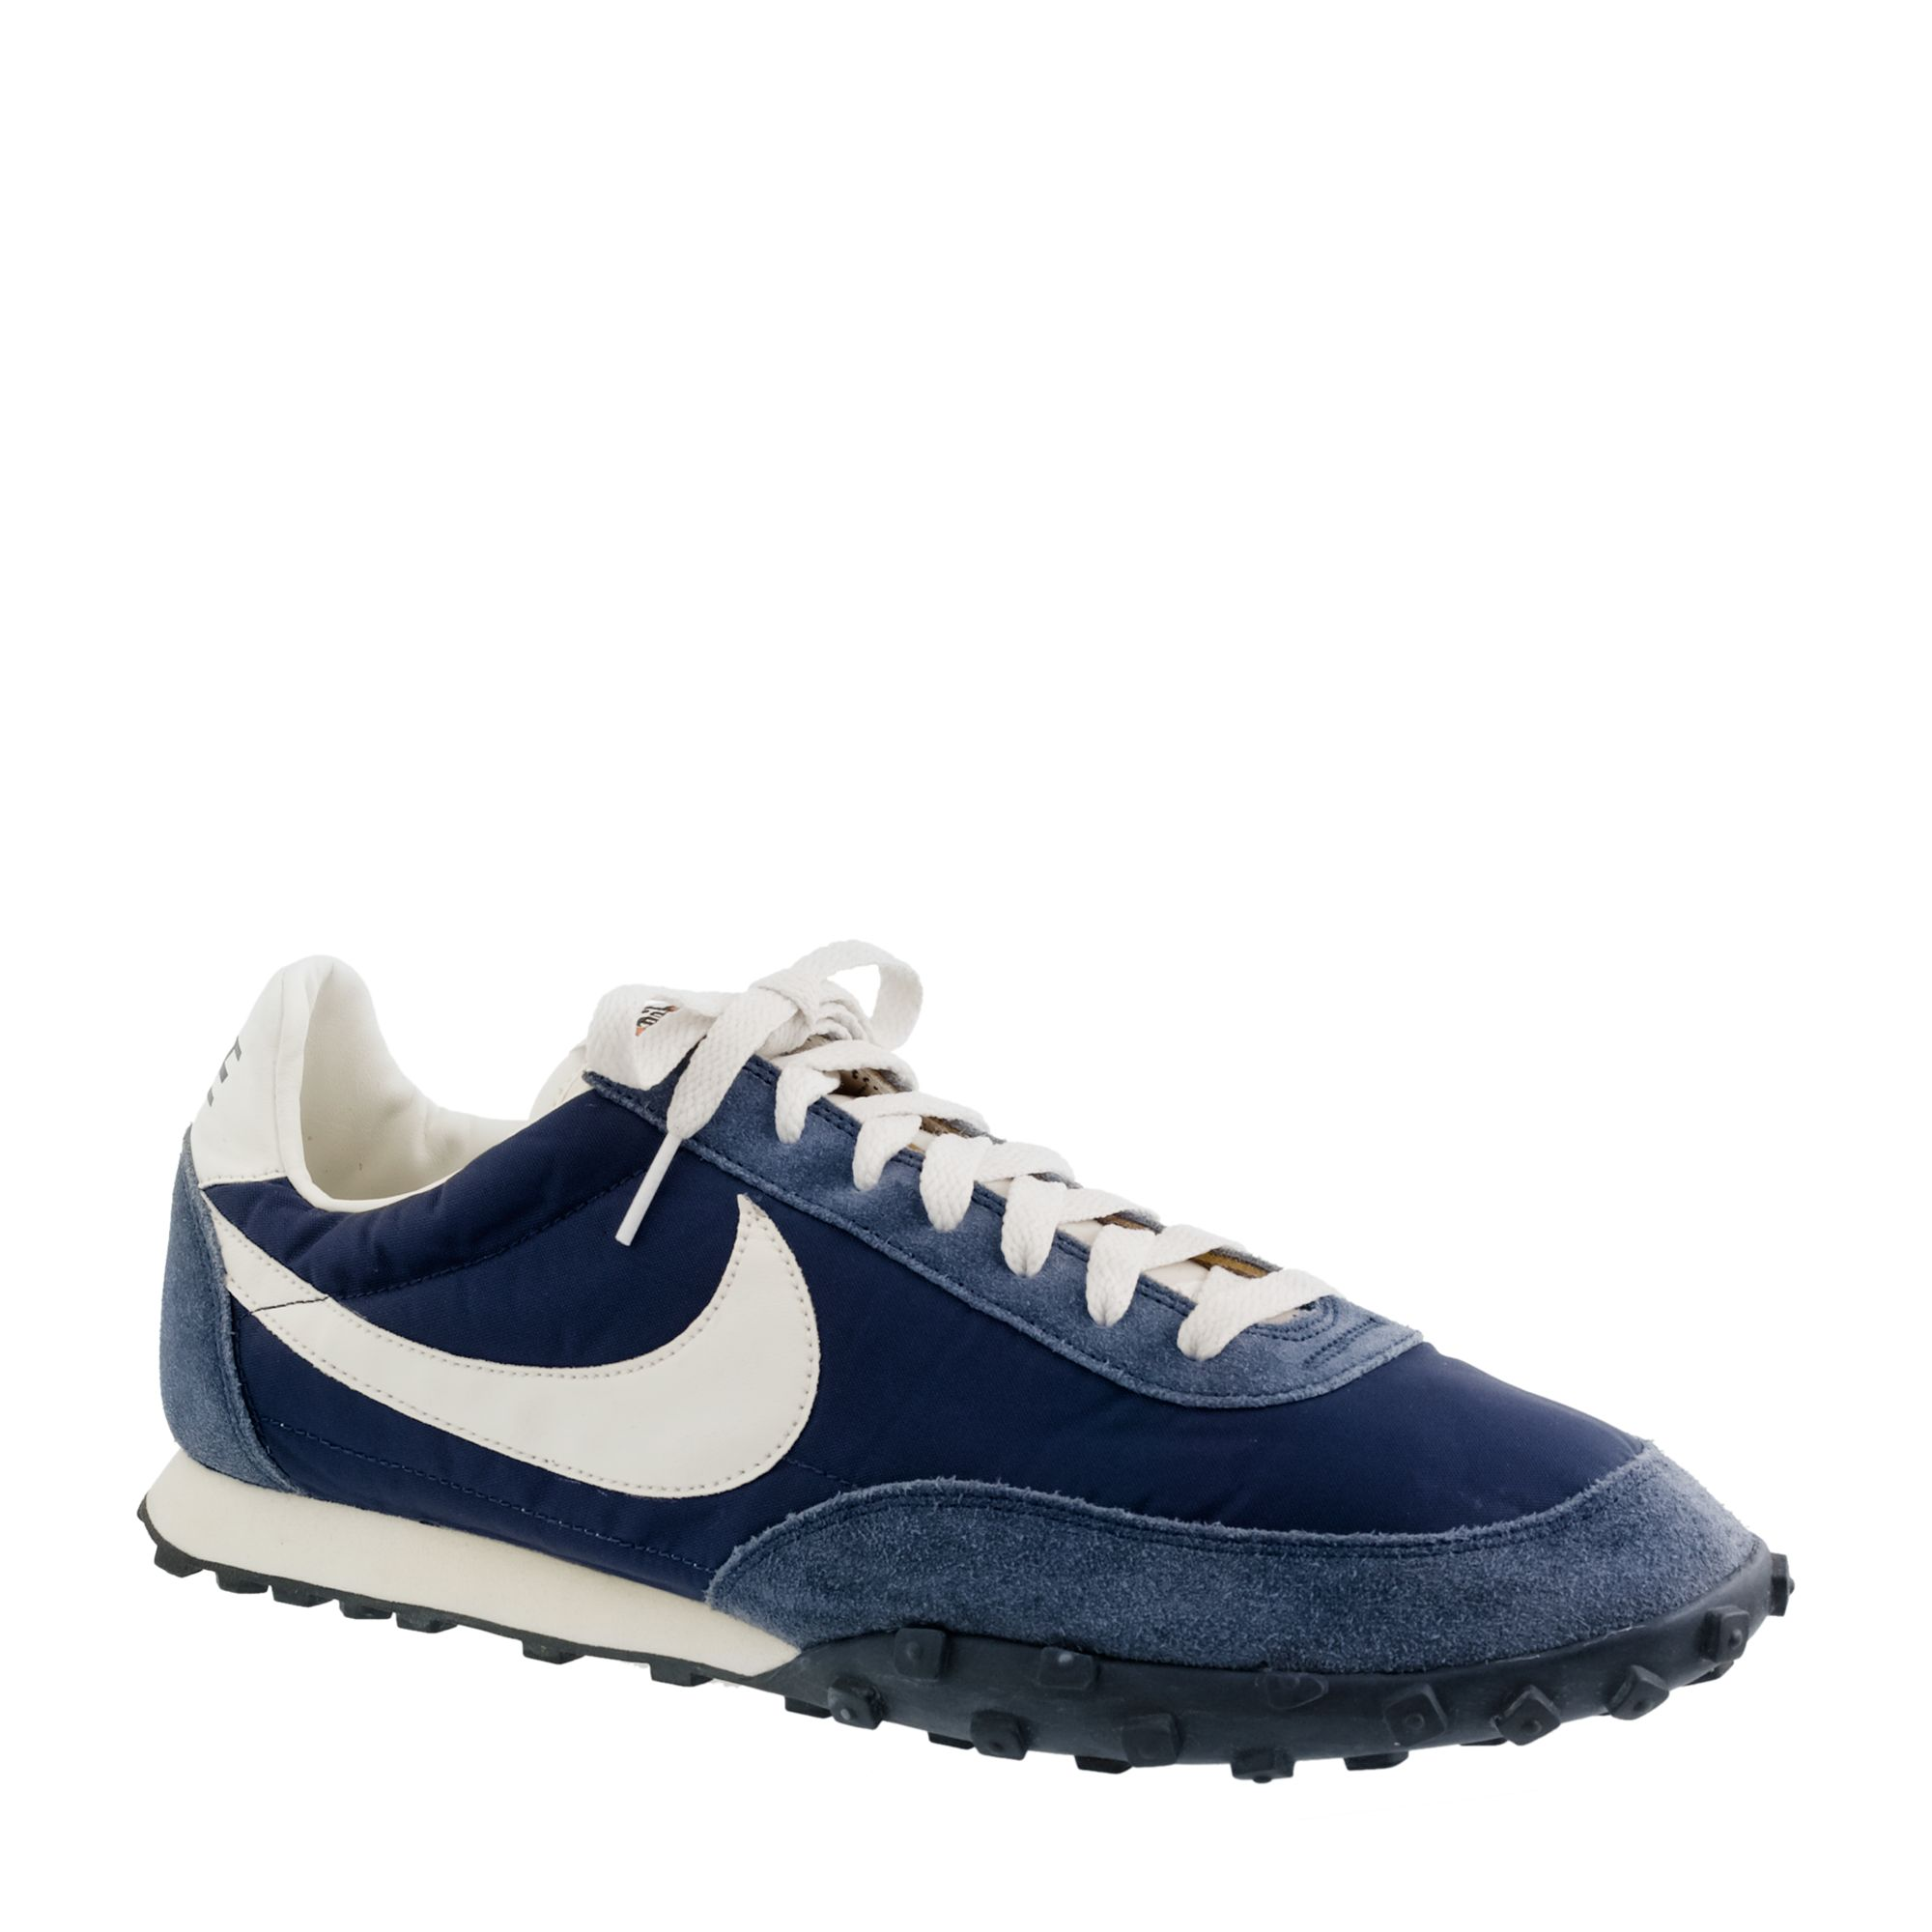 J.crew Unisex Nike® Vintage Collection Waffle® Racer Sneakers in Blue for Men (navy) | Lyst